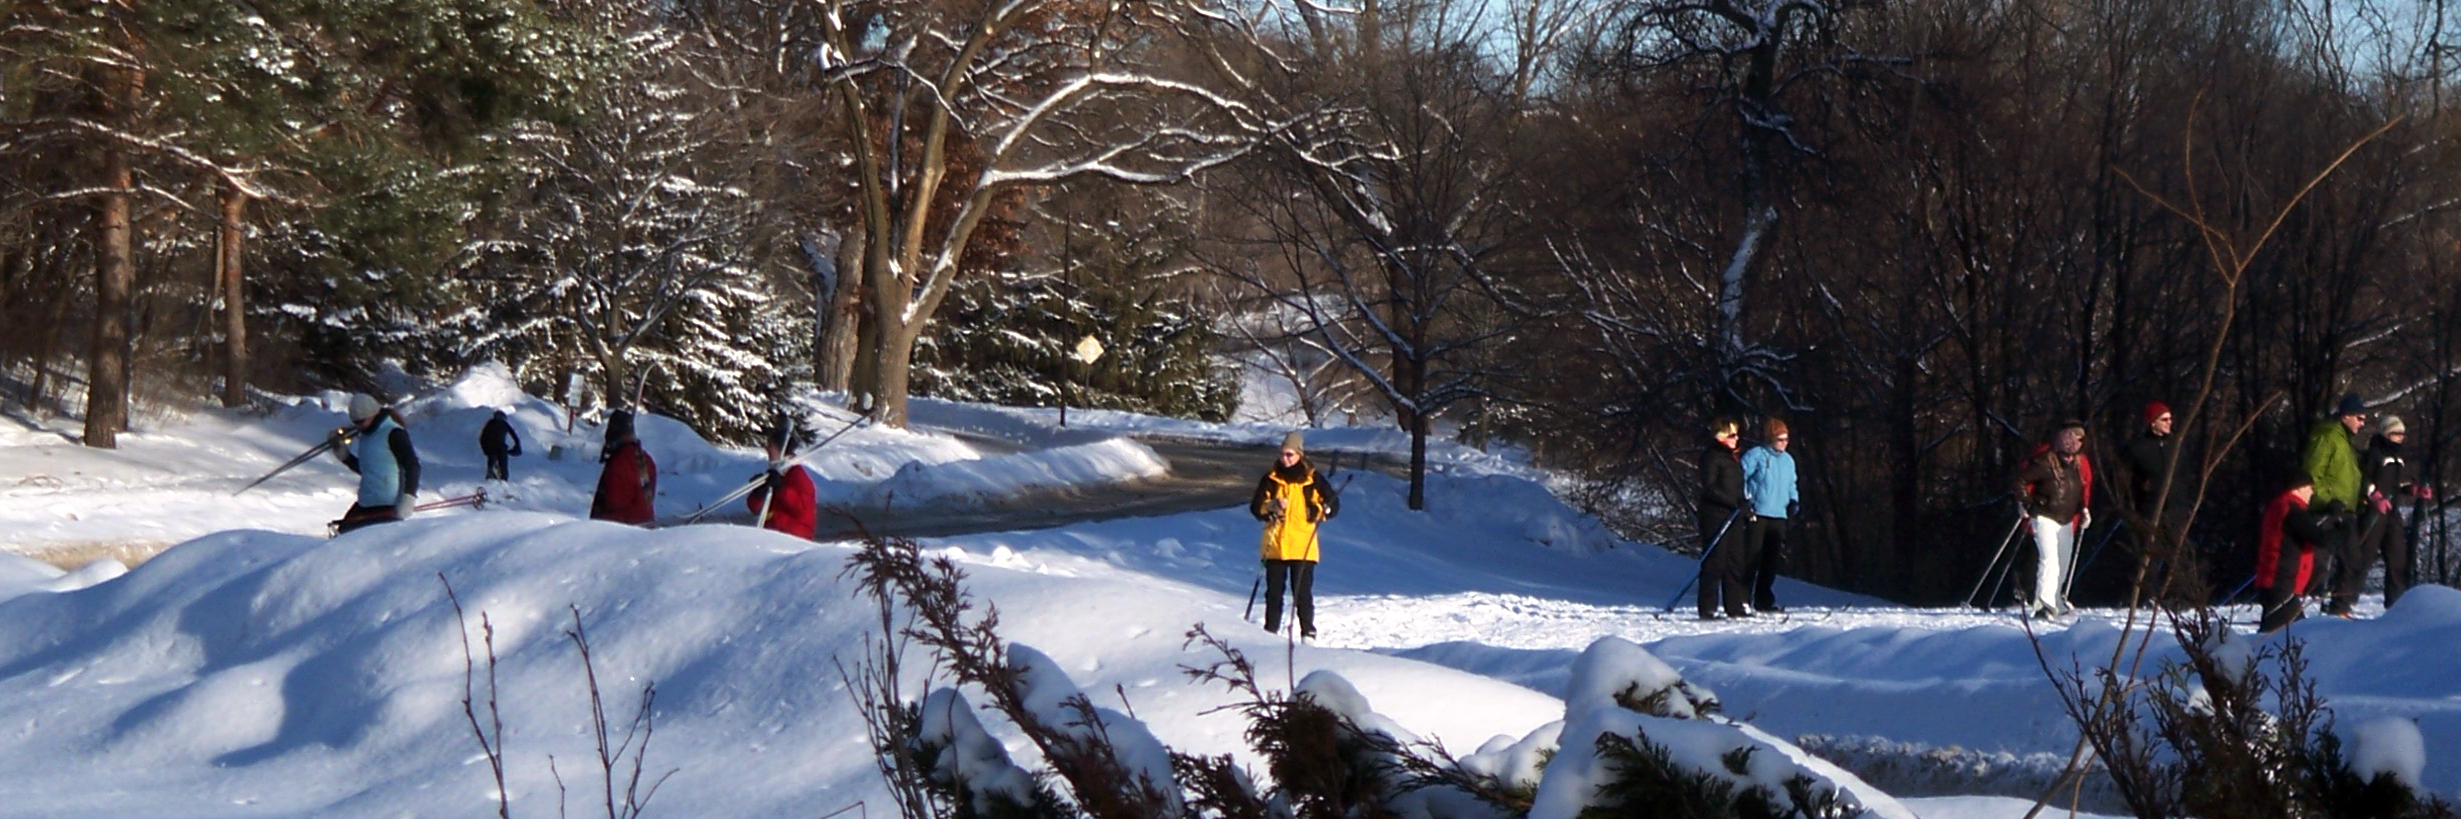 Cross Country Skiing At Theodore Wirth Park